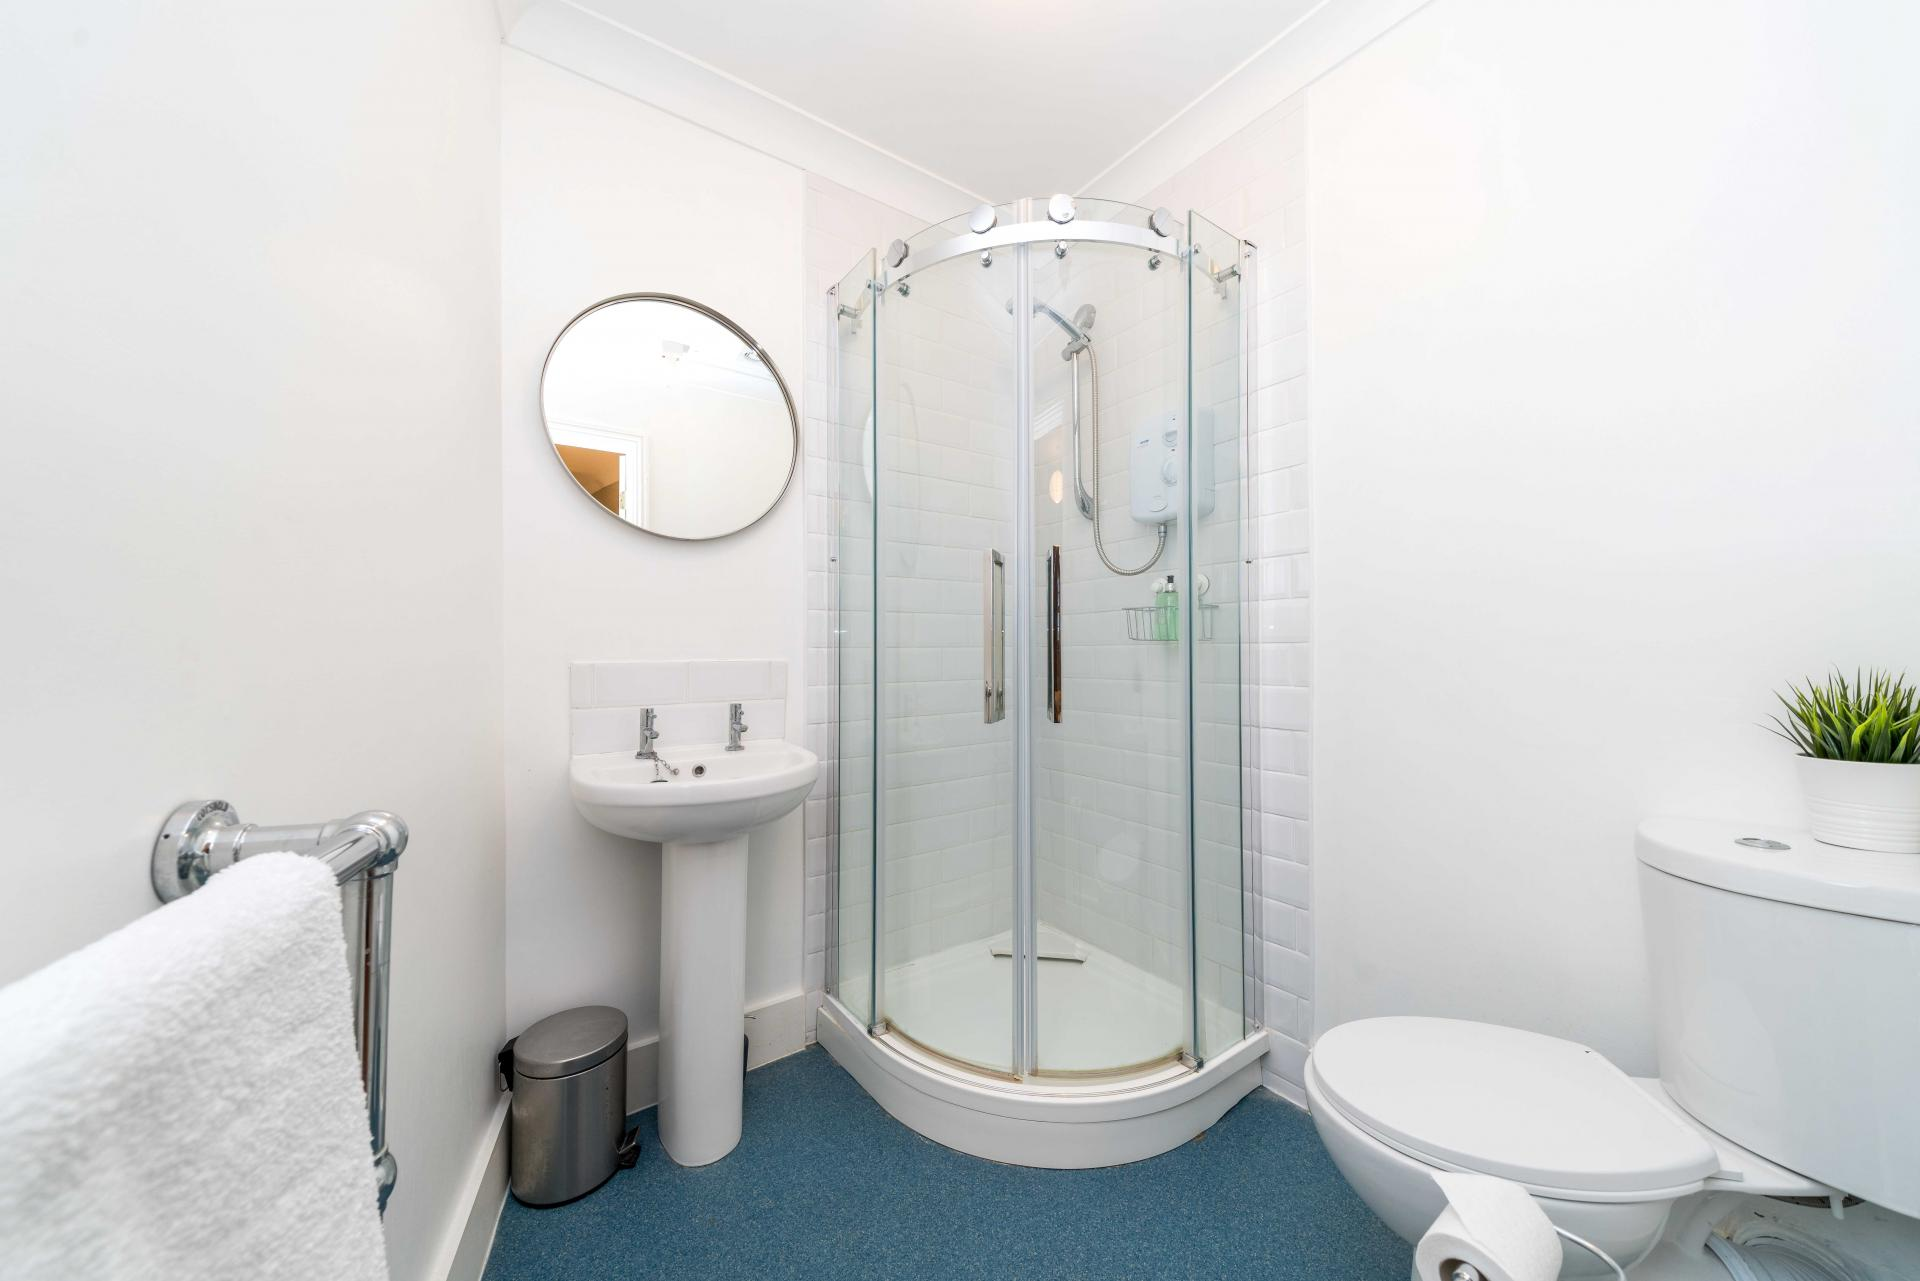 En-Suite shower at Stowfield House